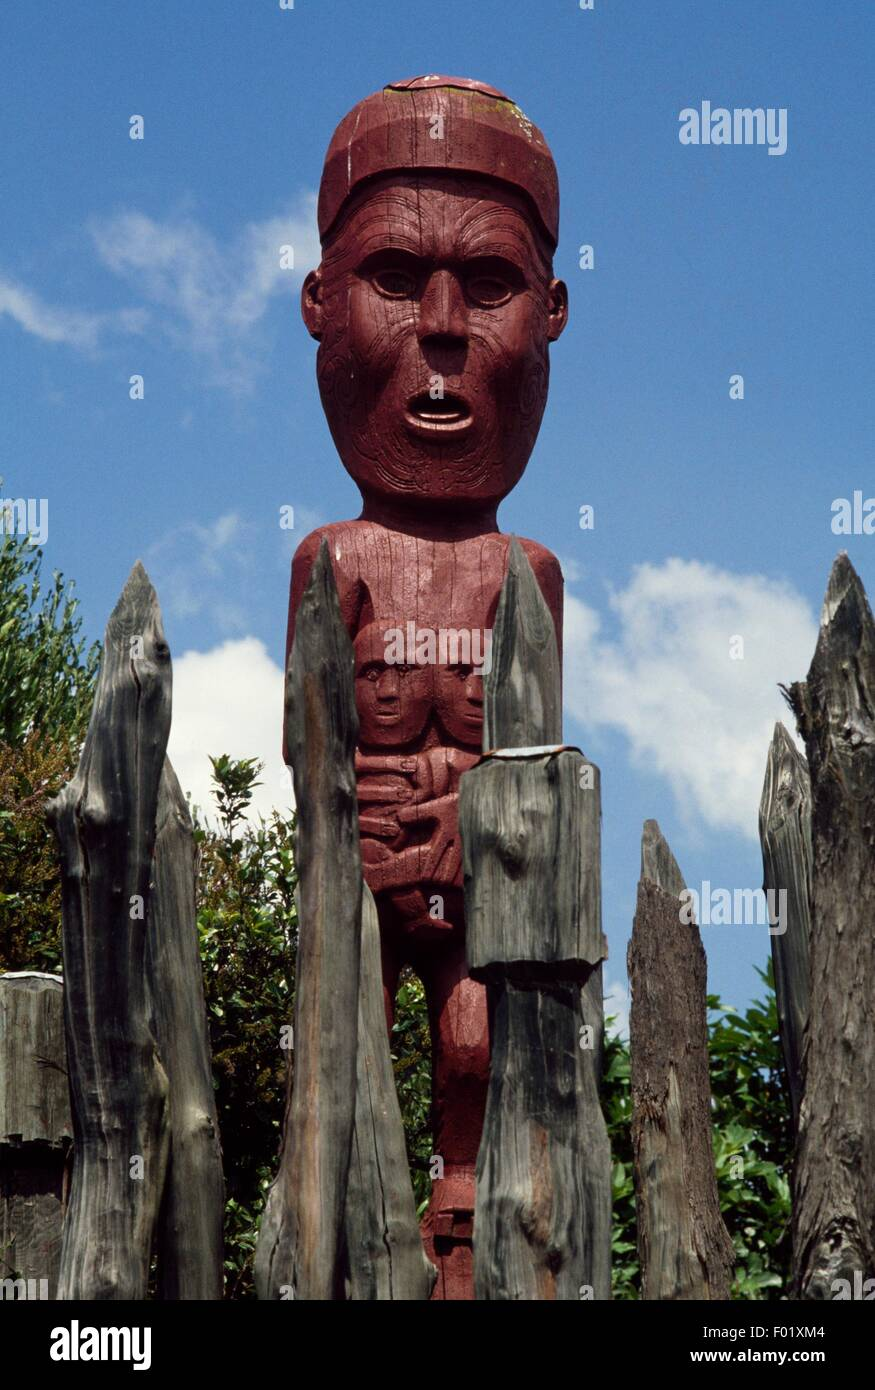 Anthropomorphic sculpture in a Pah (fortified Maori village), New Zealand. - Stock Image